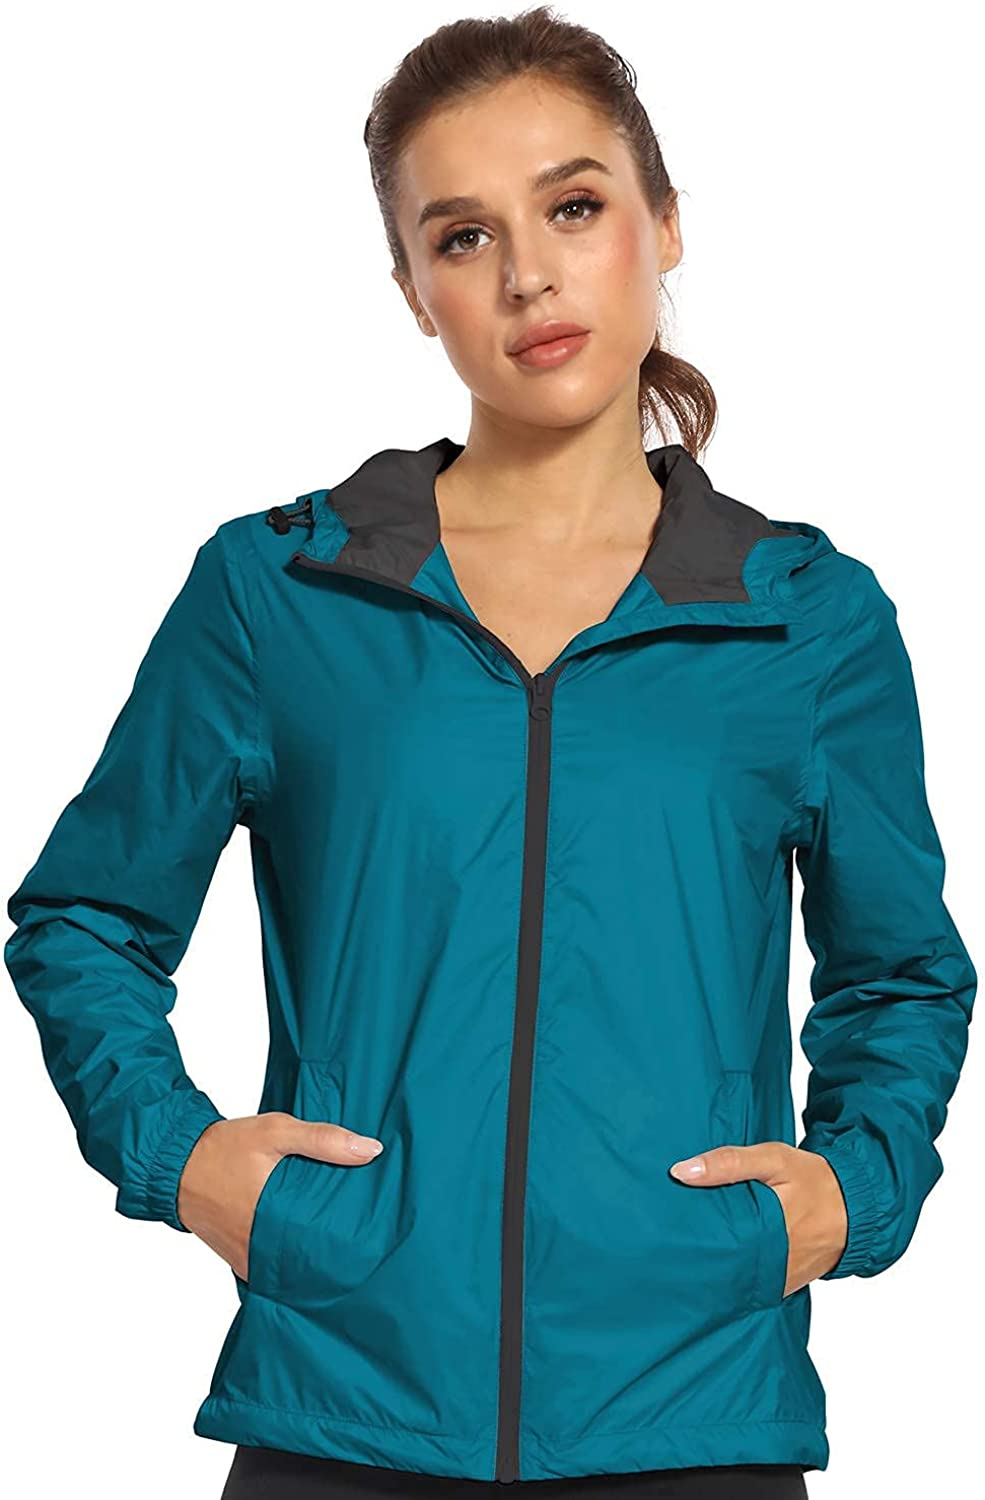 Freetrack Women's Packable Waterproof Lightwe Rain Jacket New color Zipper Free shipping anywhere in the nation